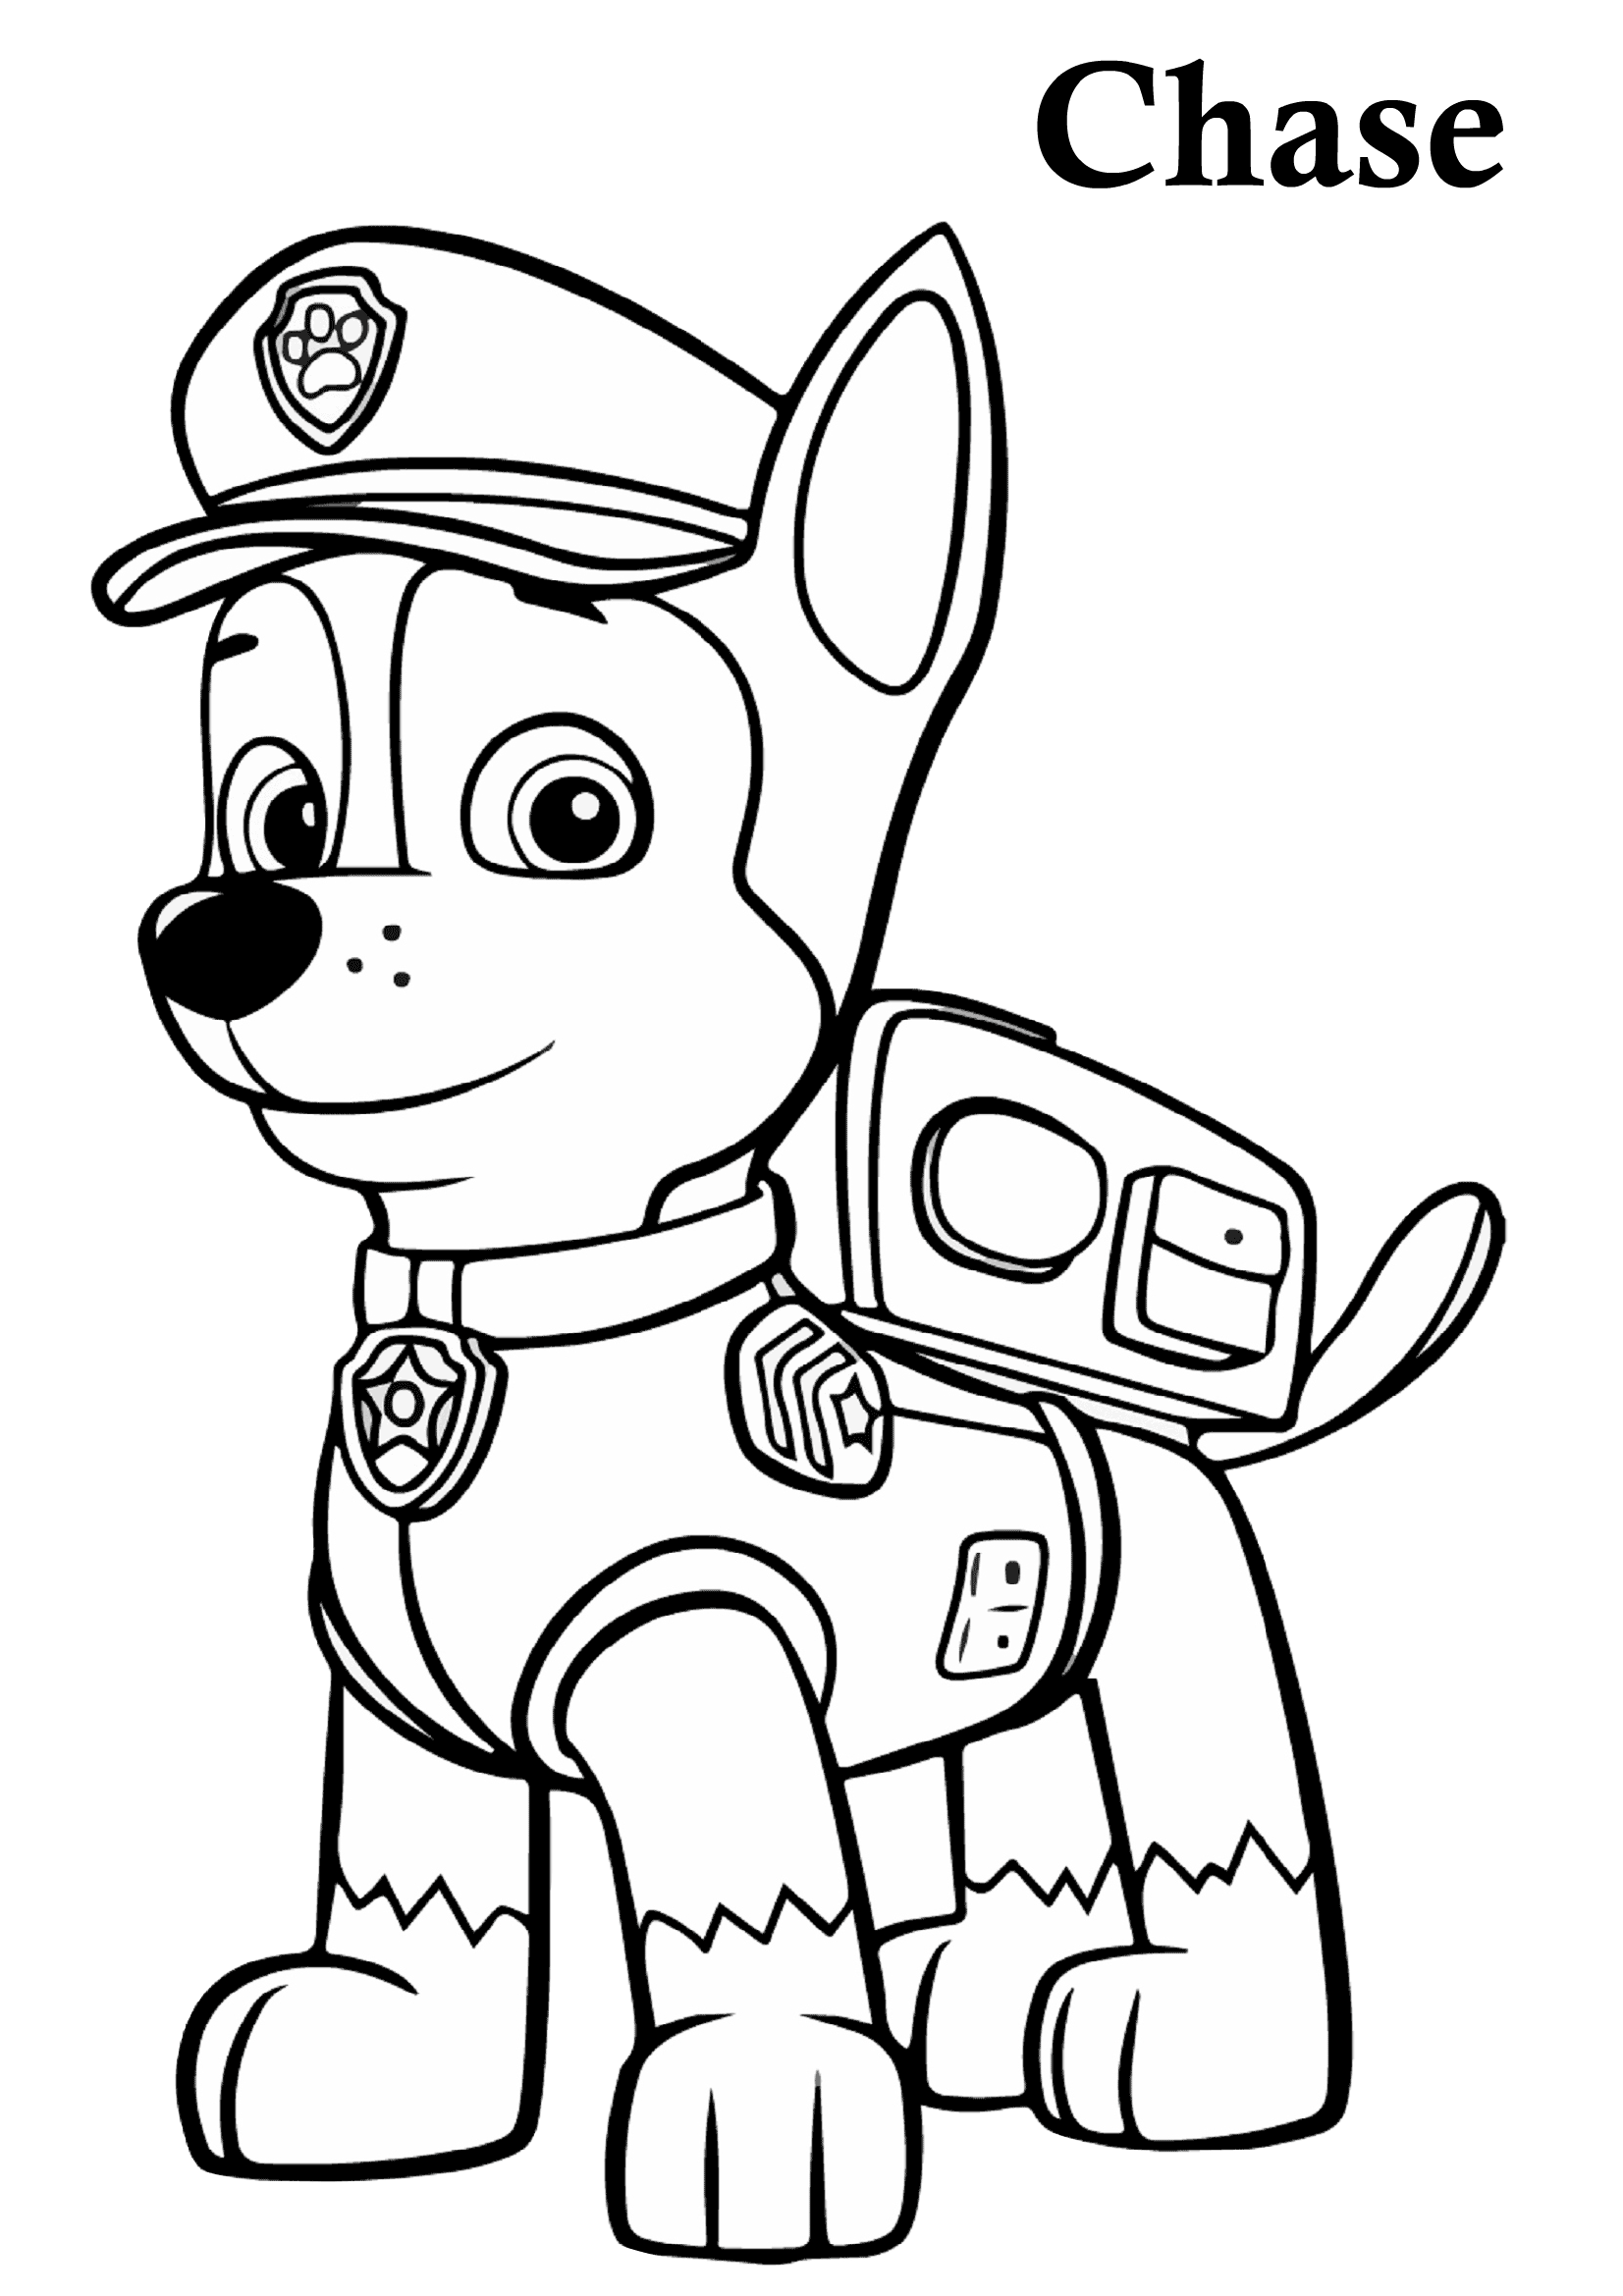 coloring images paw patrol paw patrol coloring pages for boys educative printable images coloring patrol paw